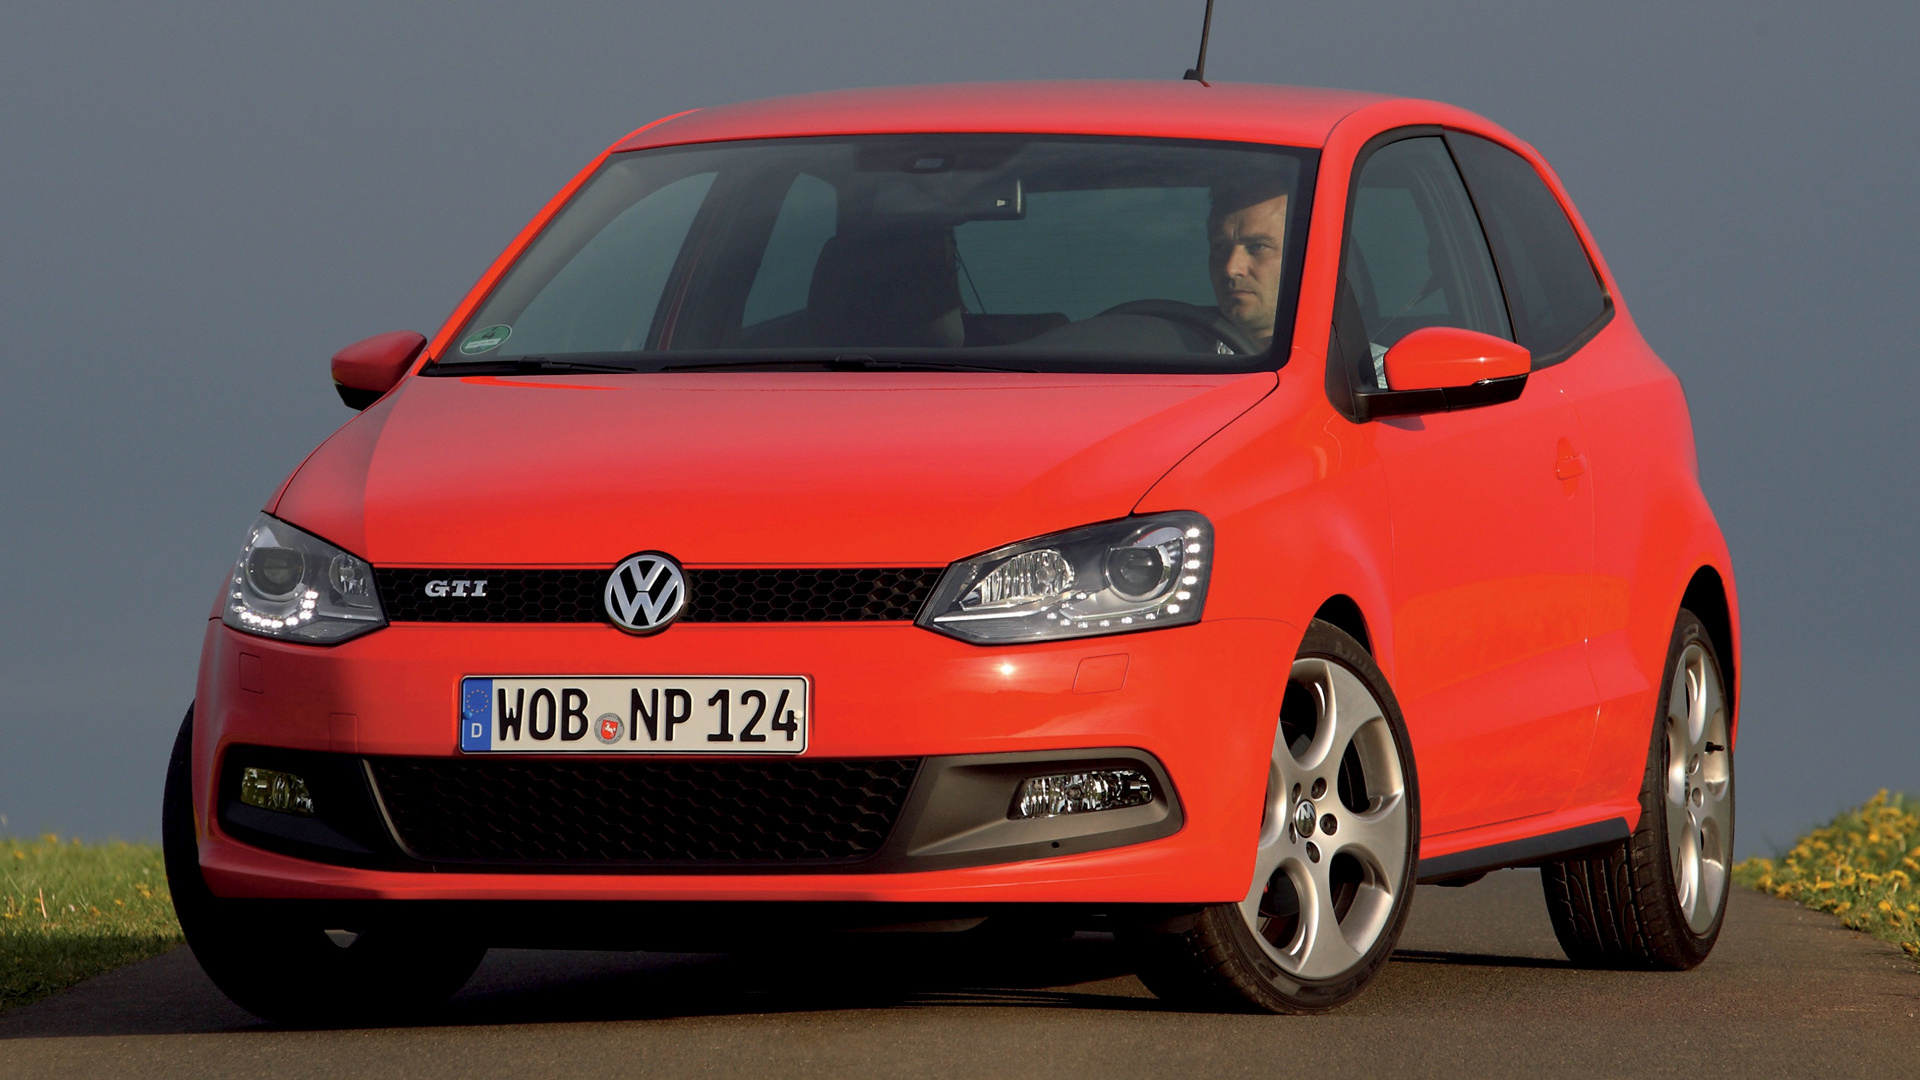 volkswagen polo gti 3 door 2010 wallpapers and hd images car pixel. Black Bedroom Furniture Sets. Home Design Ideas